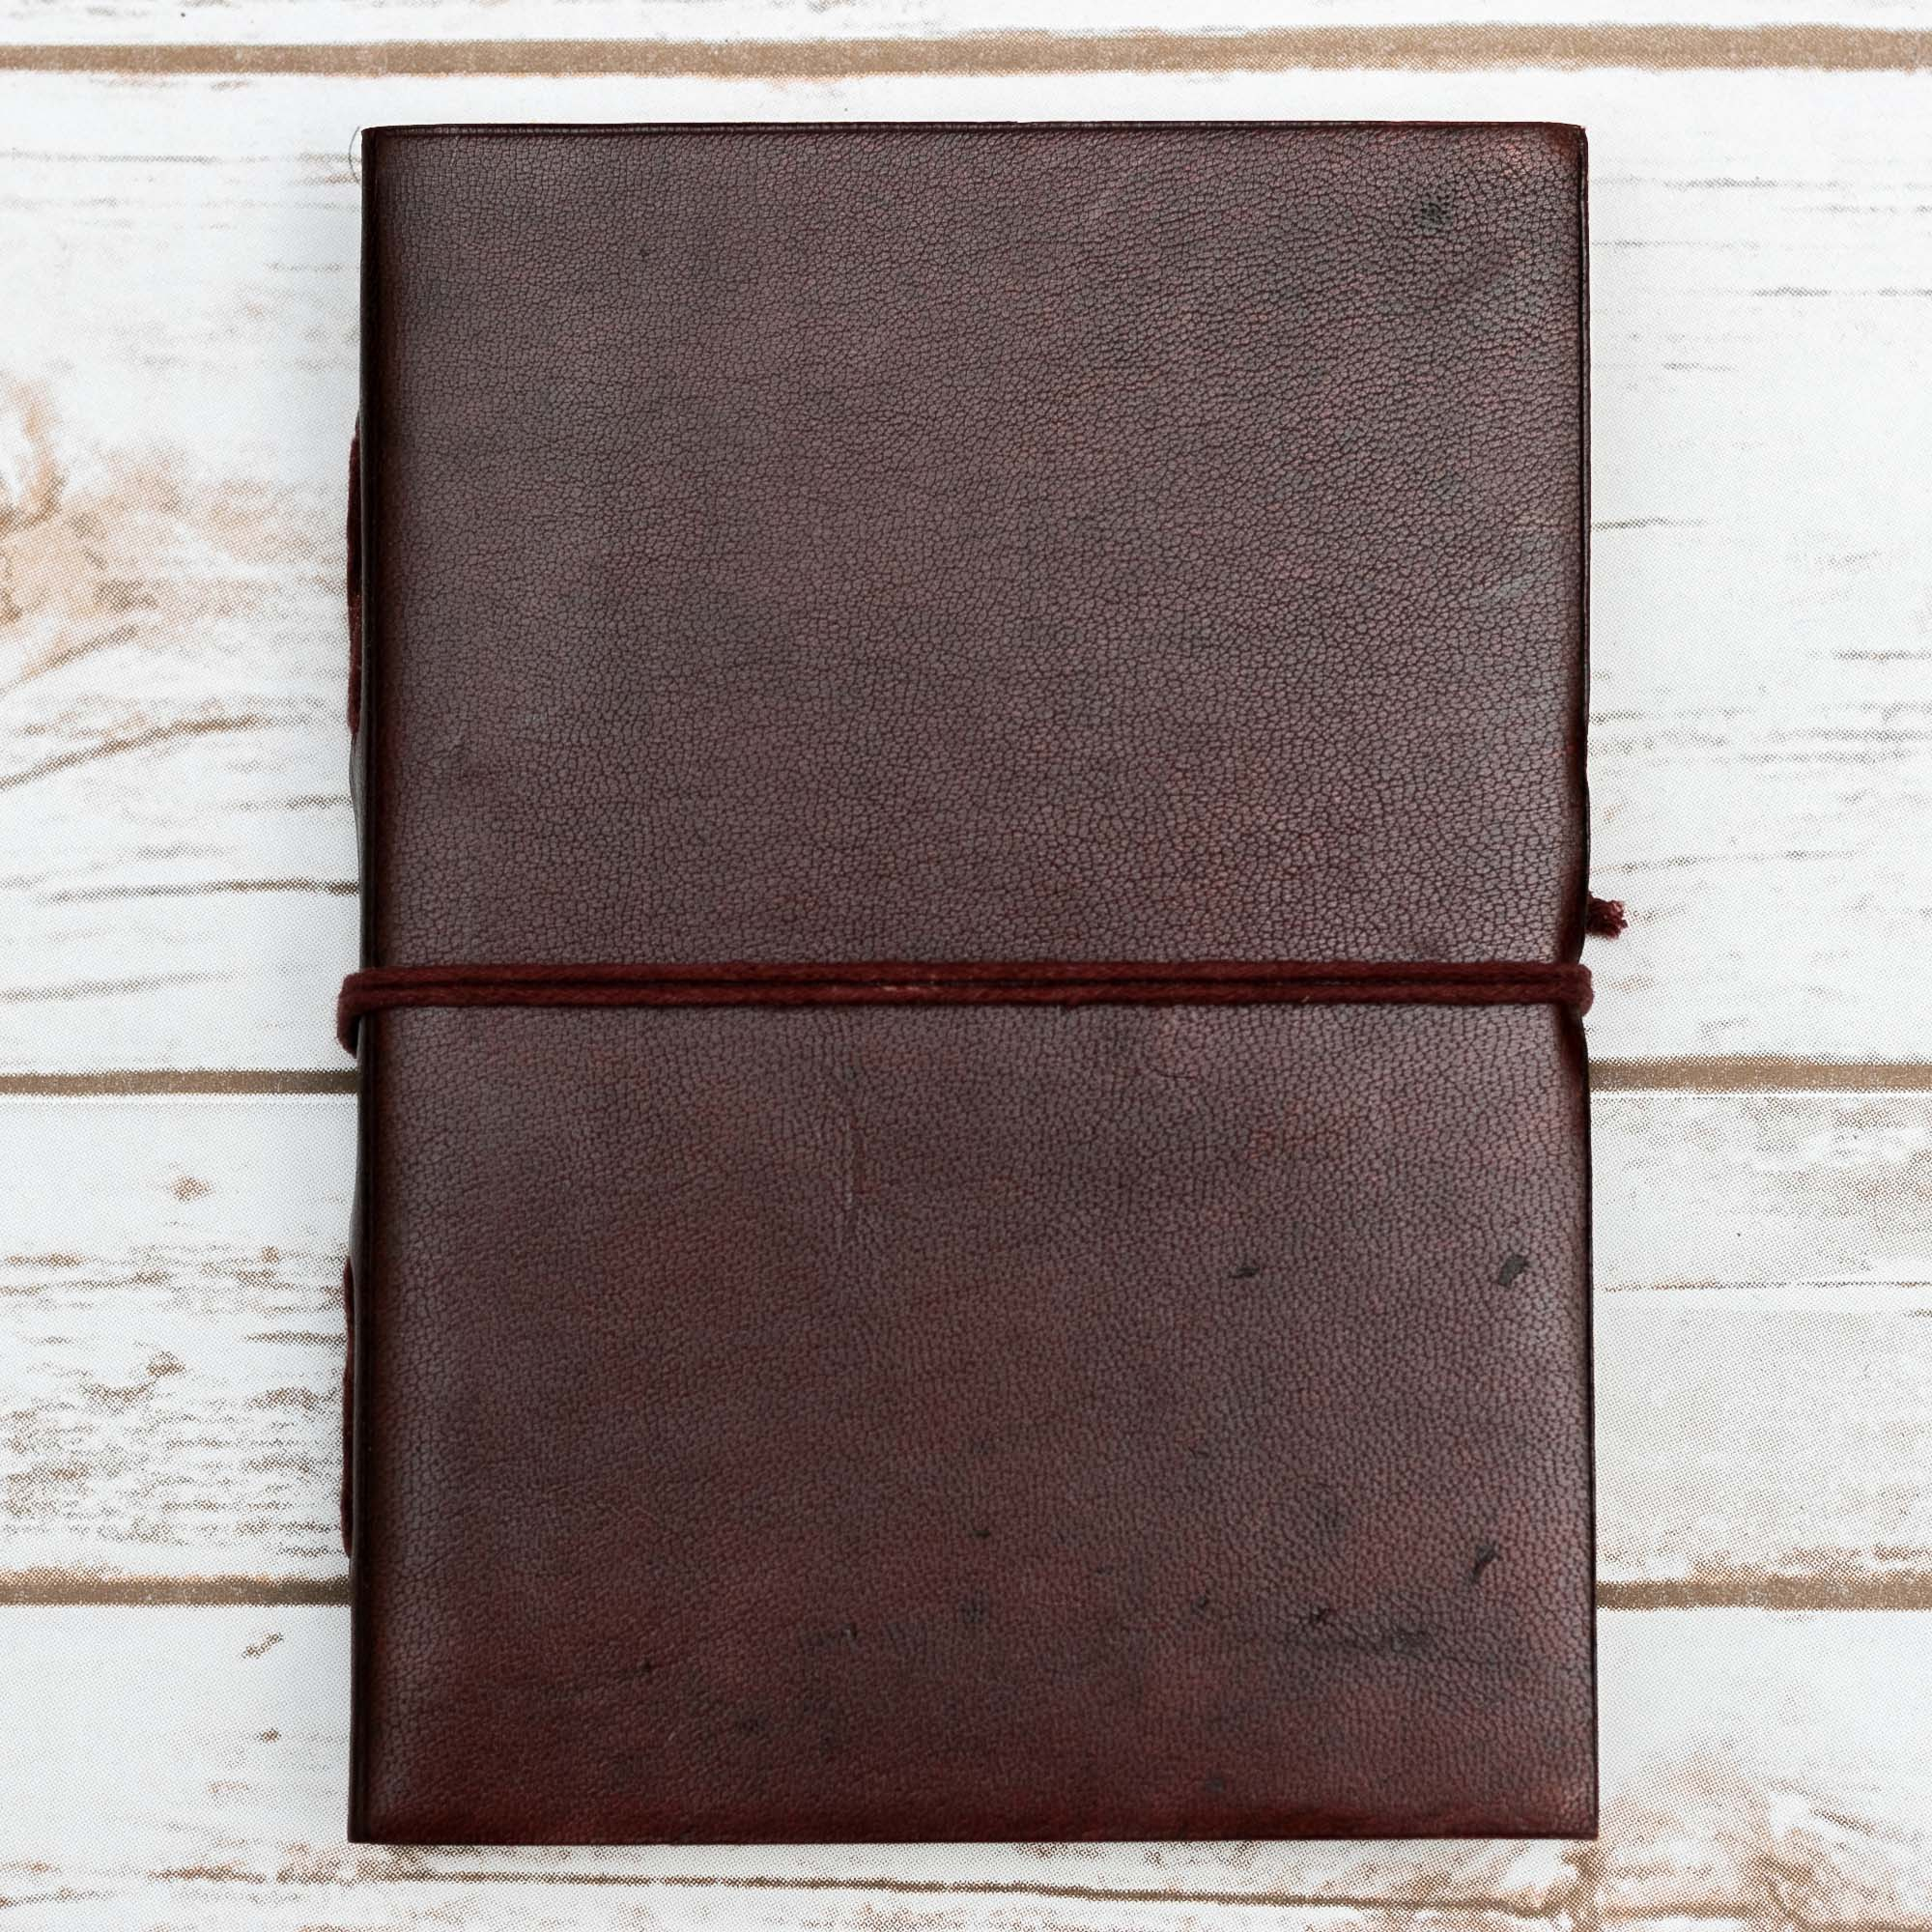 CUSTOM LEATHER JOURNALS - 5X7